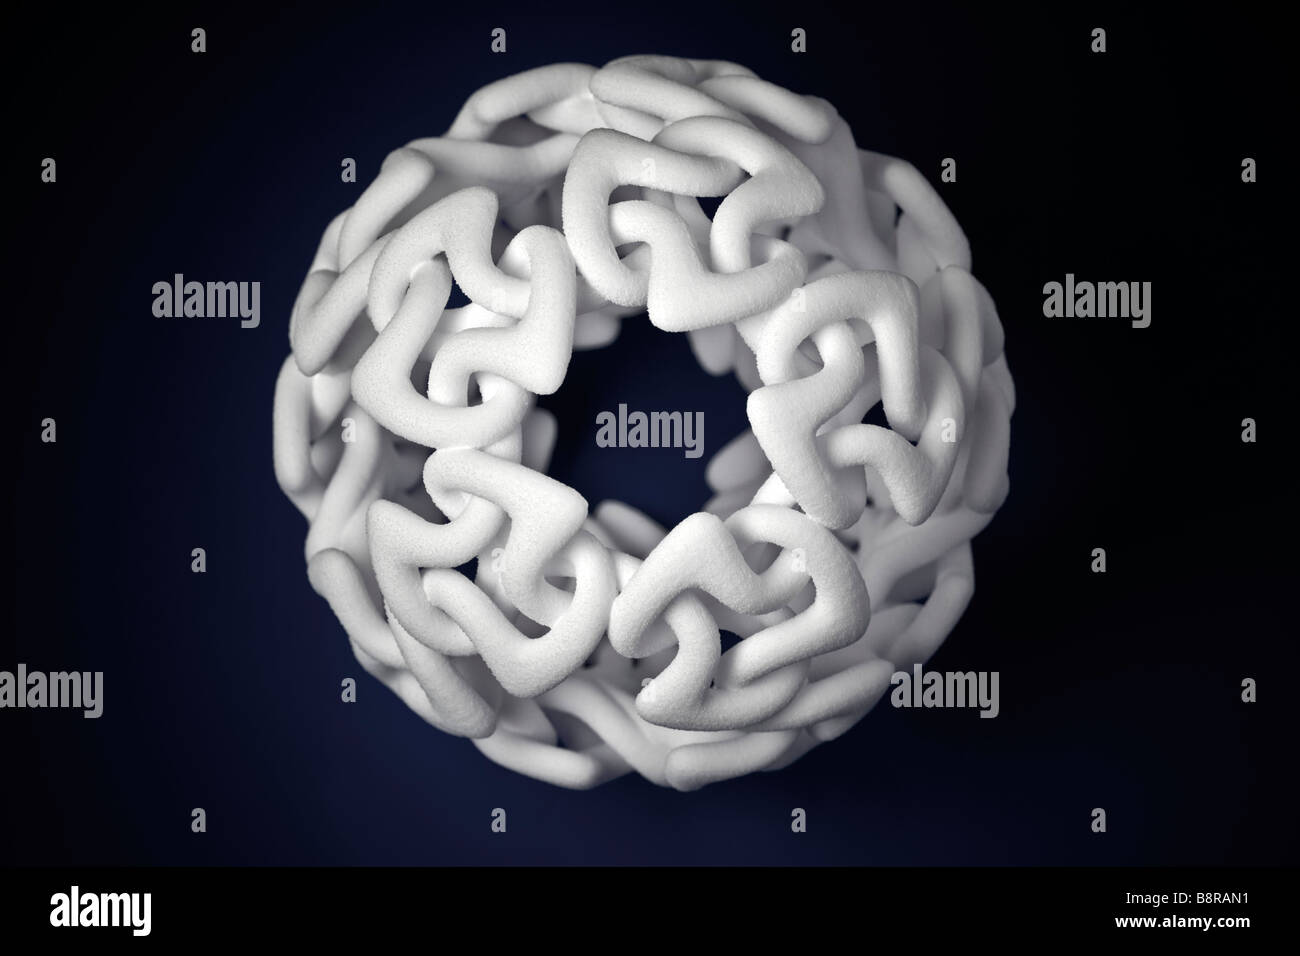 A production by 3-dimensional printing of a modern sculpture. Production en 3 dimensions d' une sculpture moderne. - Stock Image